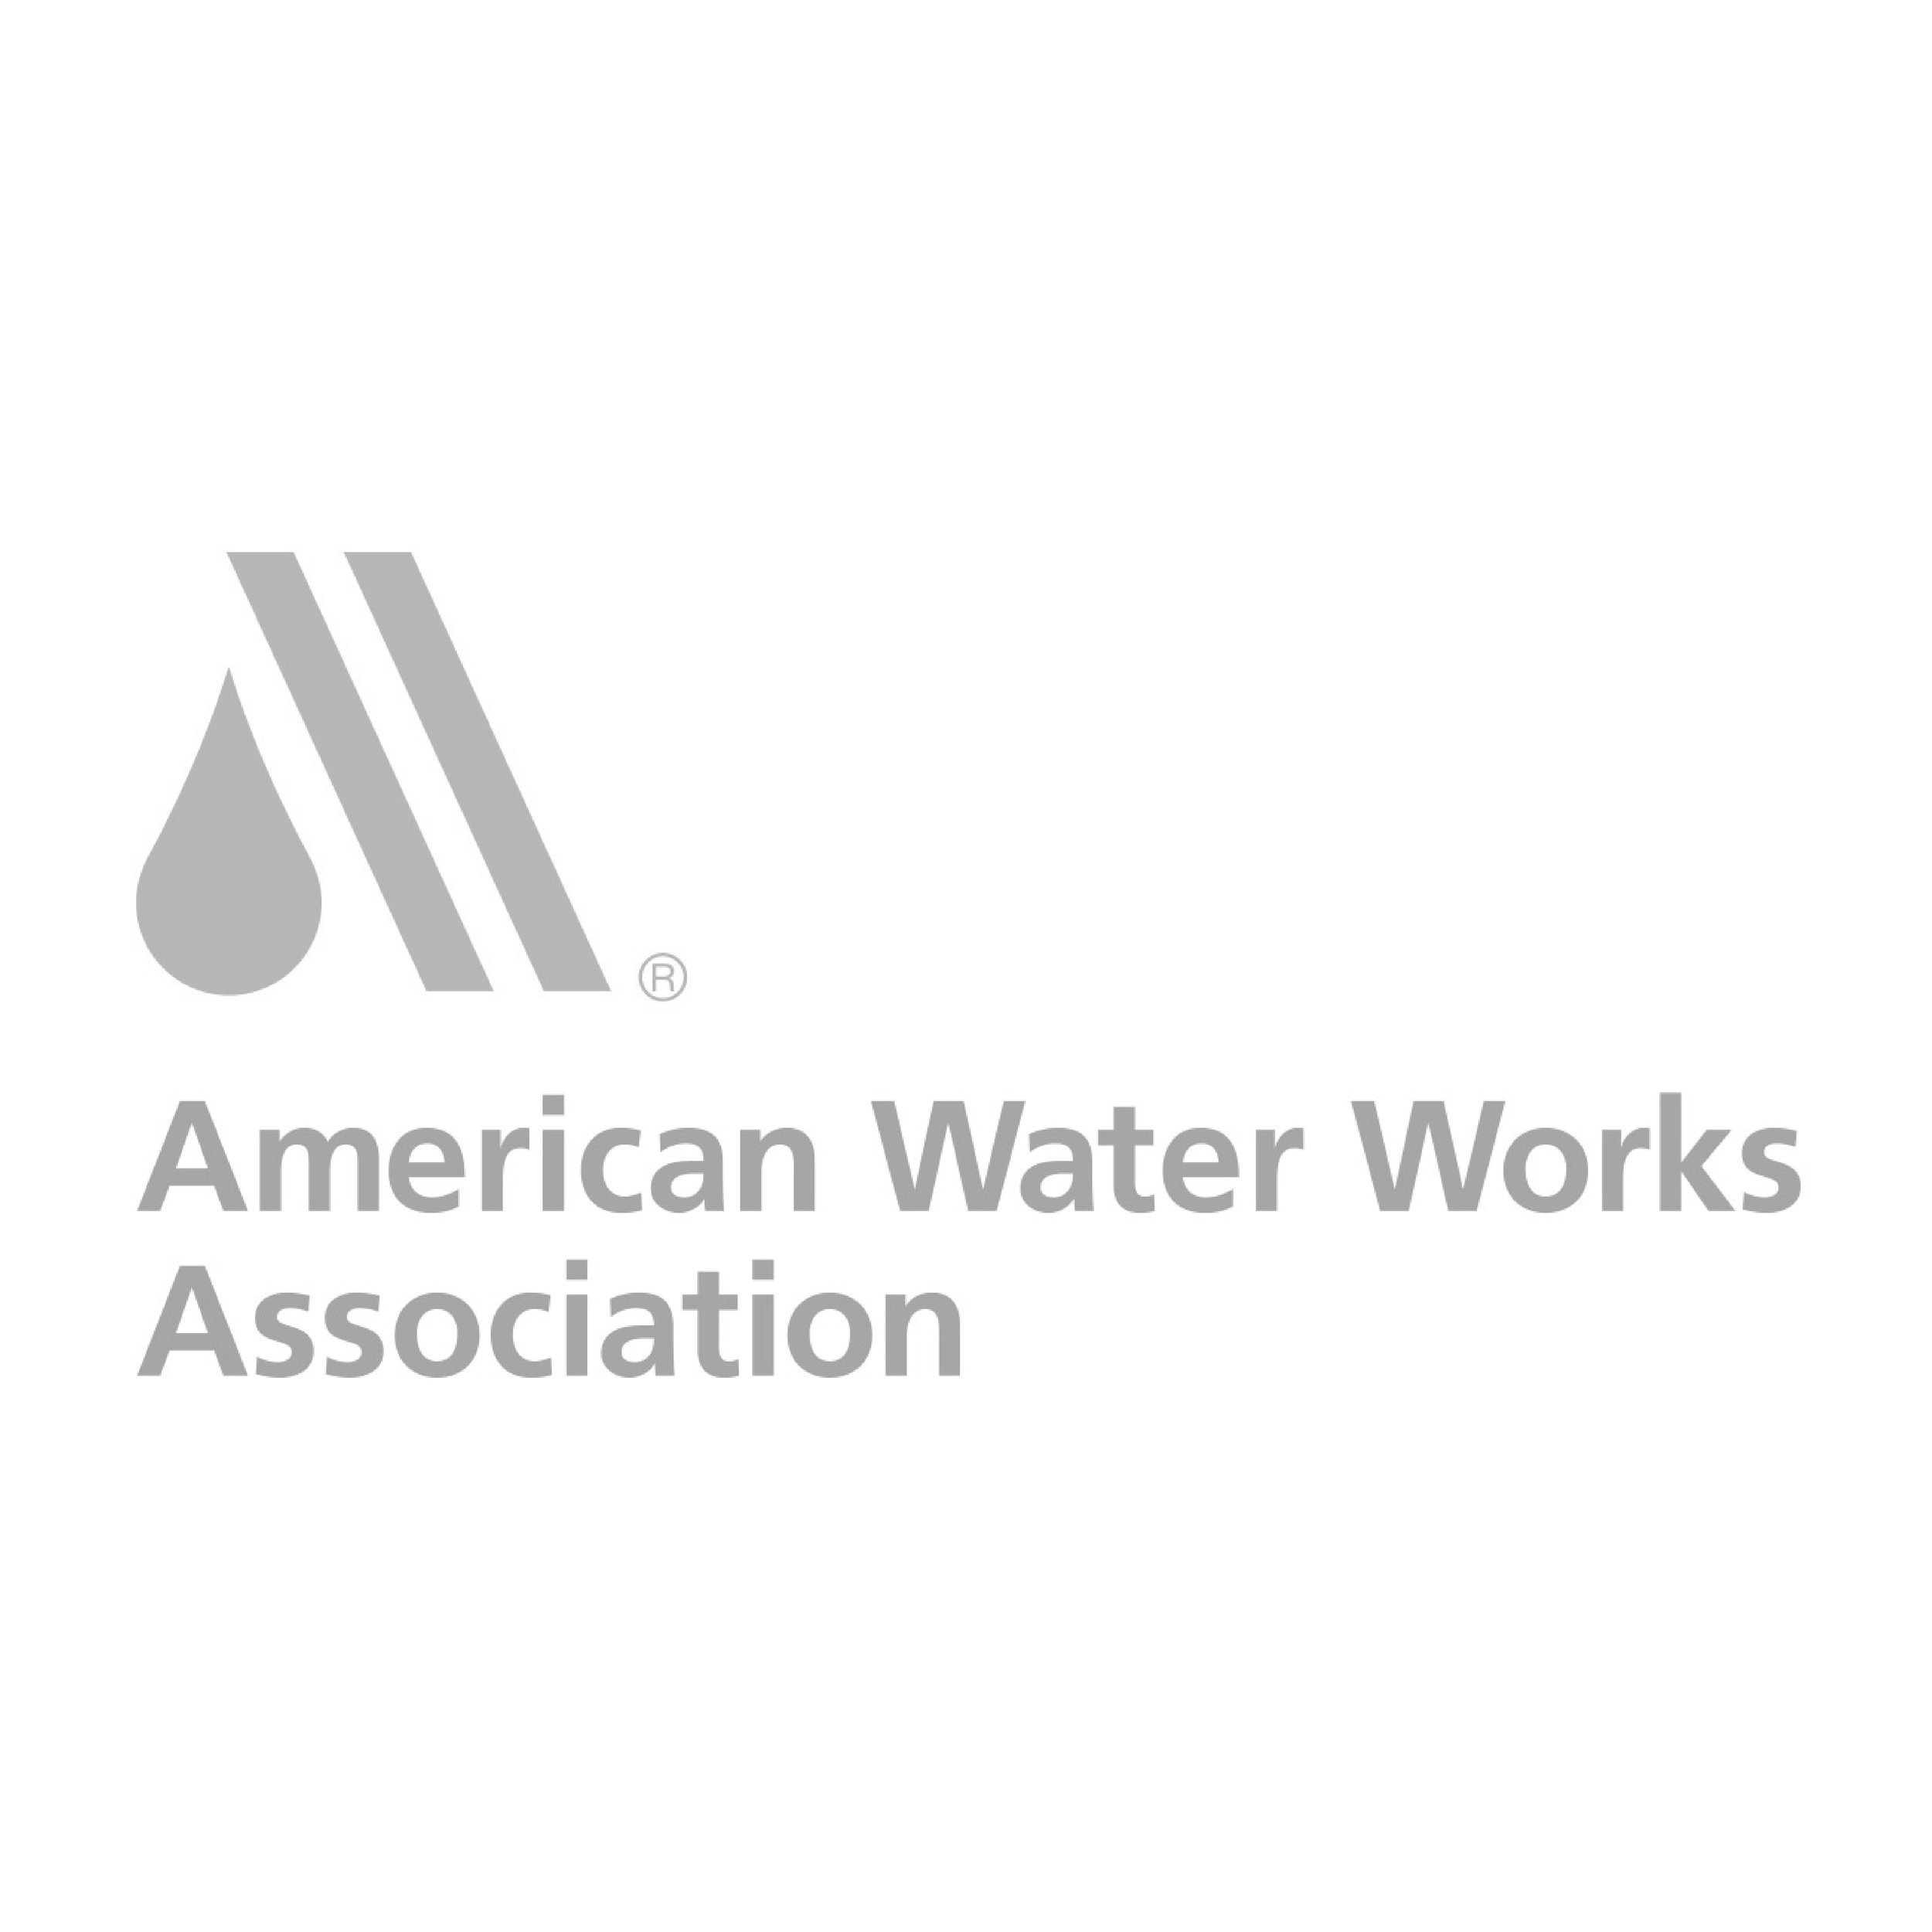 American Water Works Association-01.jpg